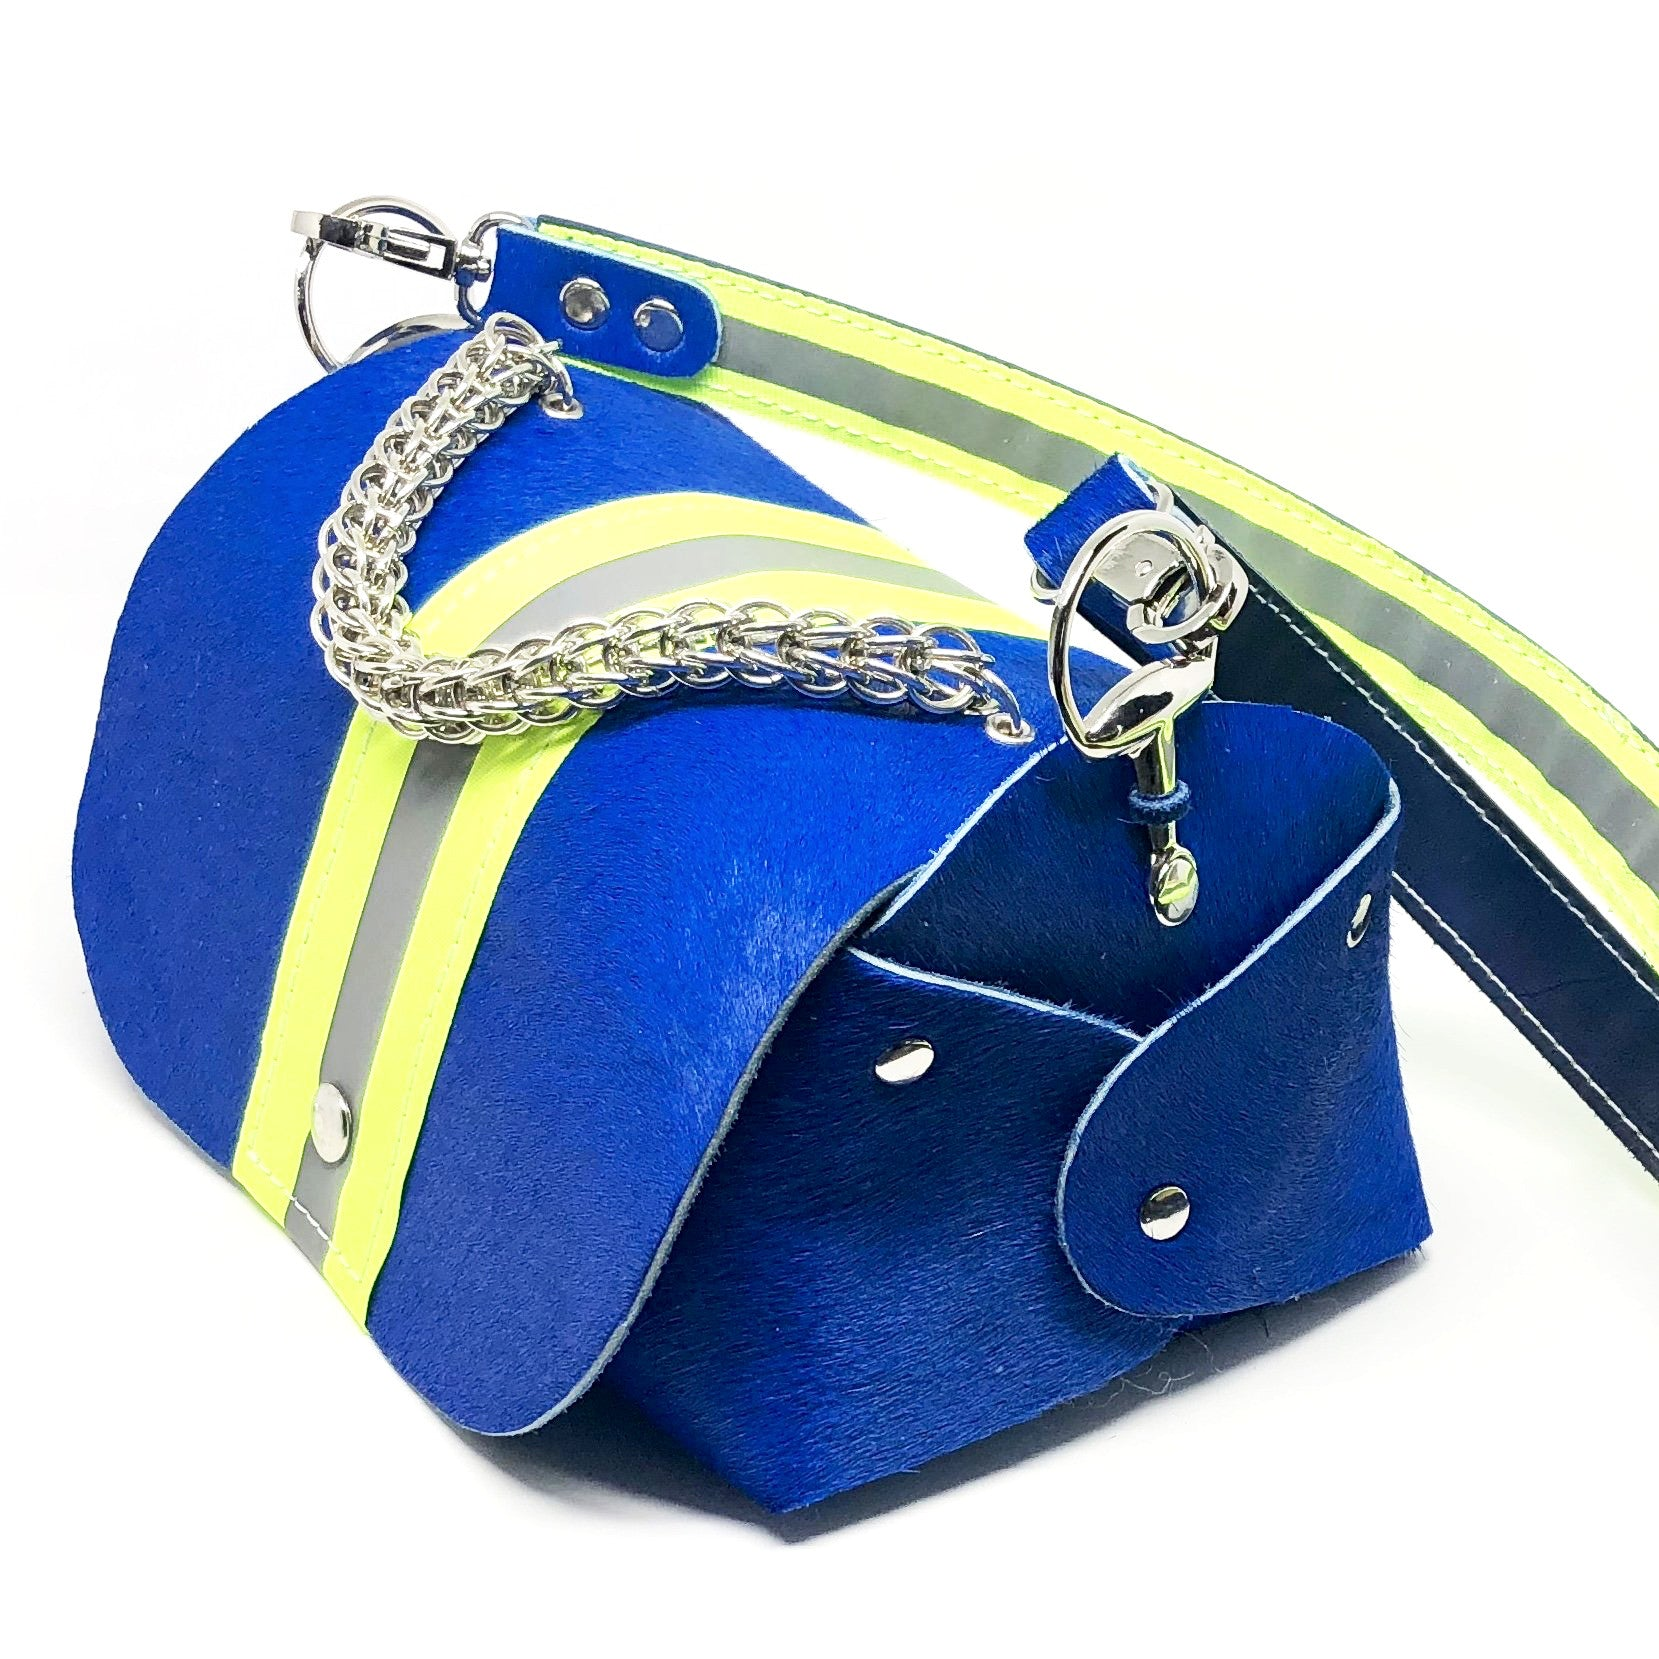 HAIR-ON COWHIDE LEATHER WITH WIDE NEON YELLOW REFLECTIVE TRIM. By NYET Jewelry.